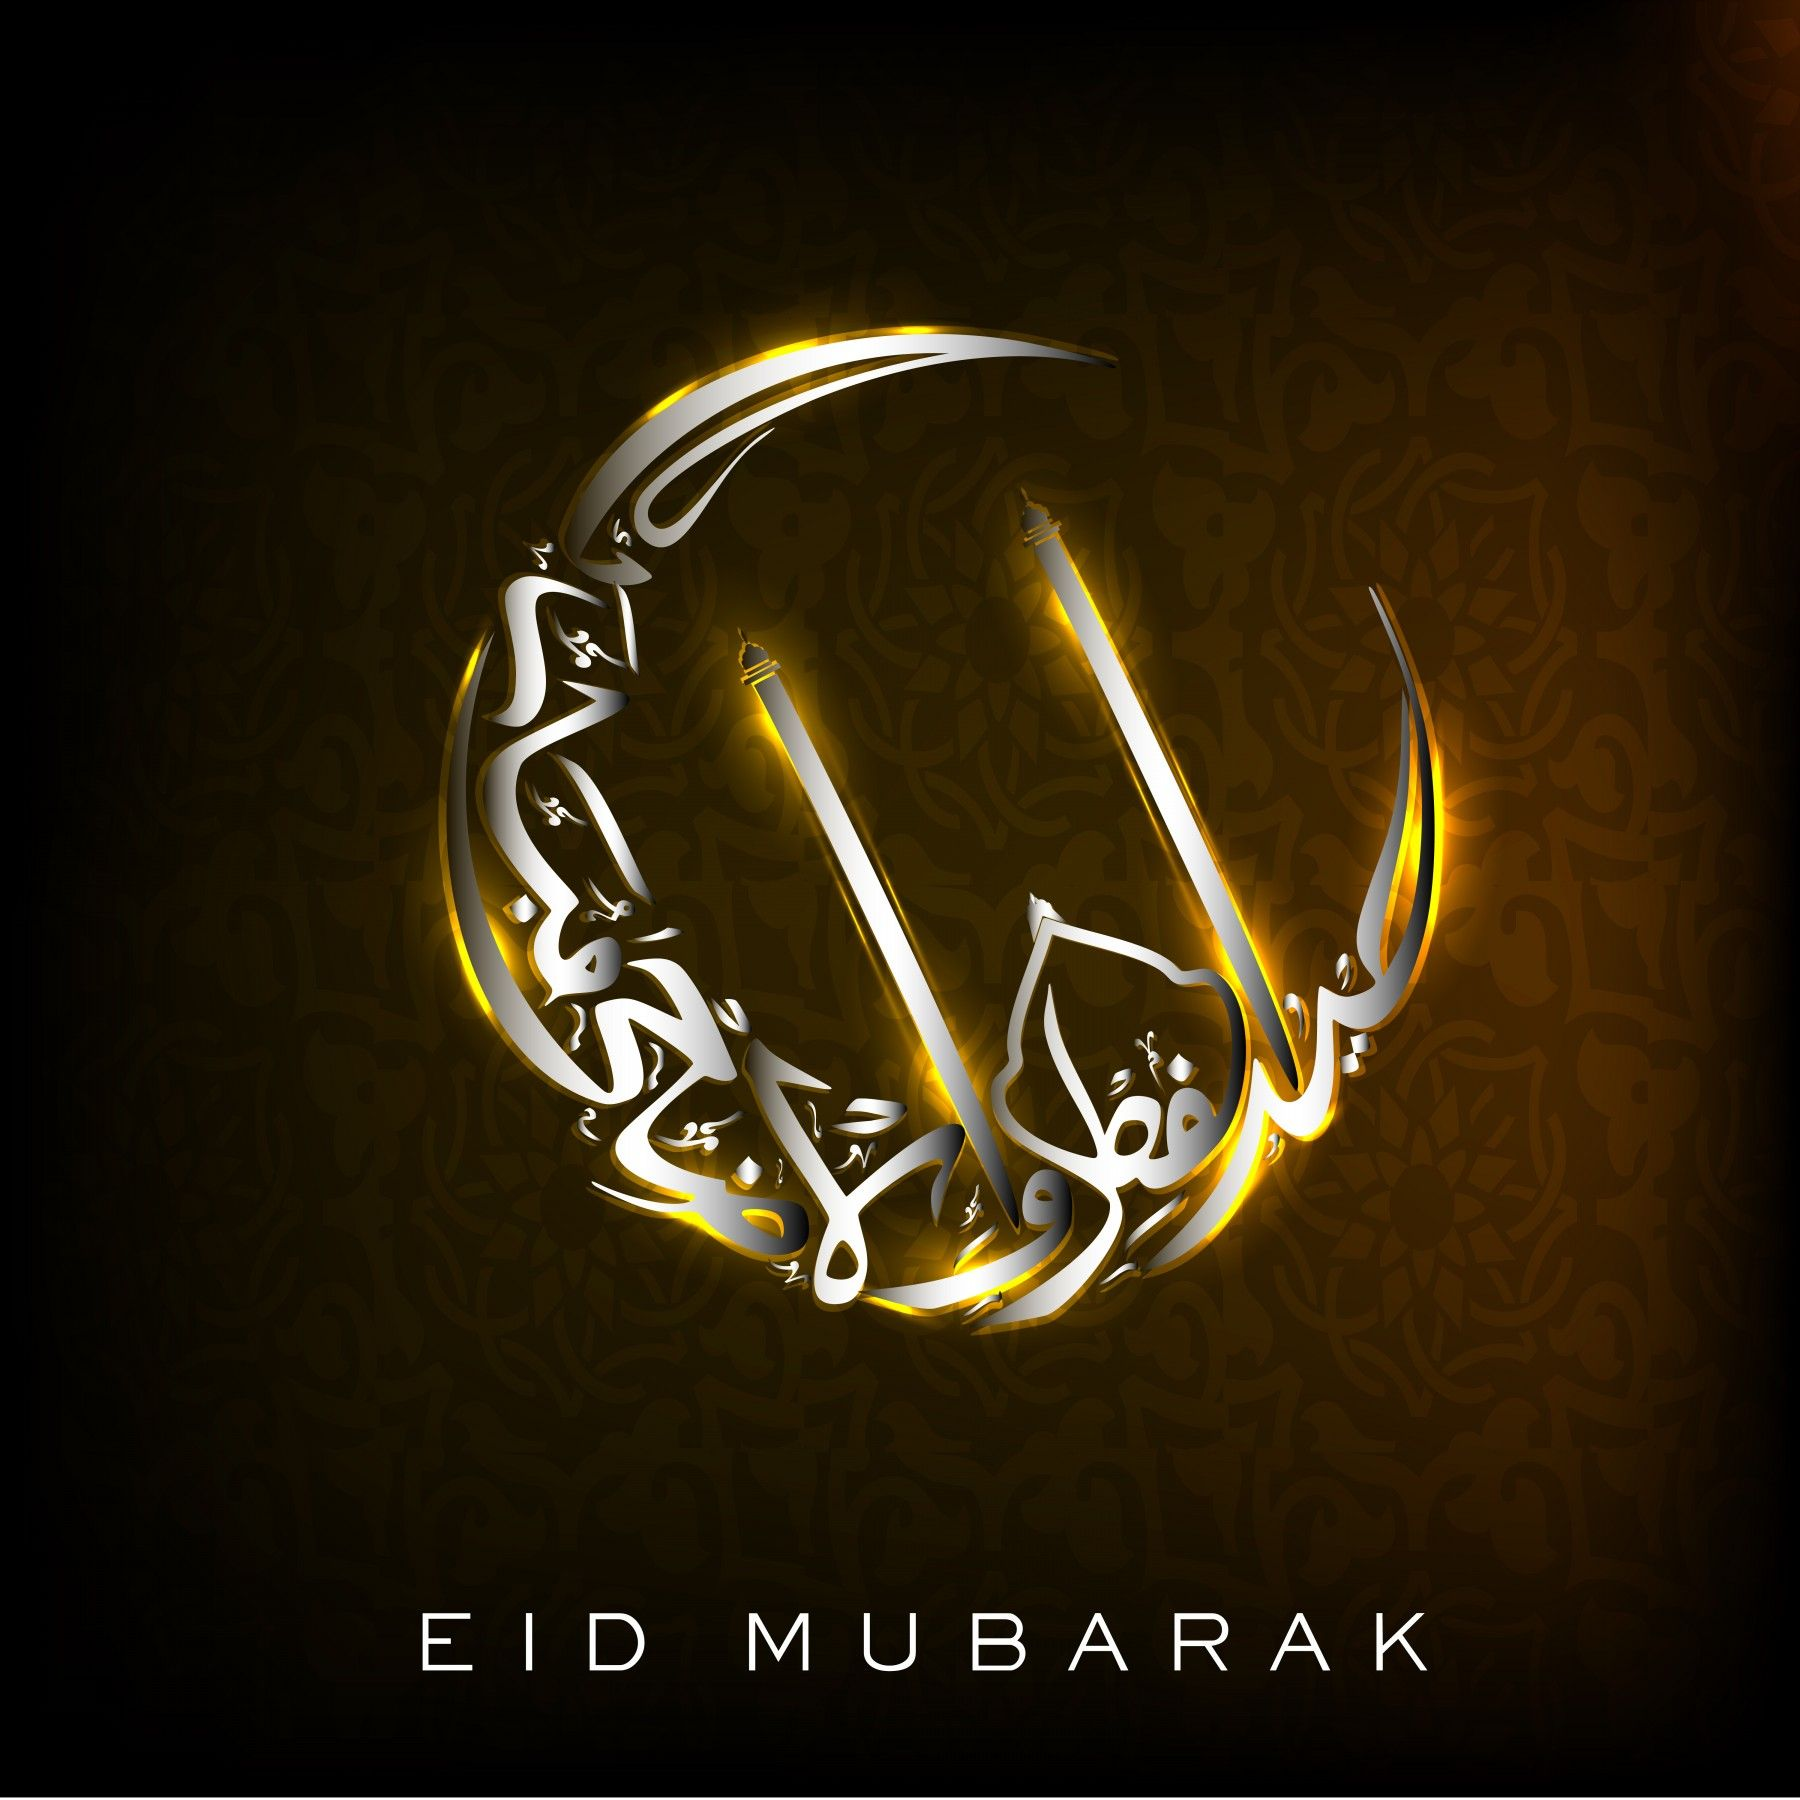 Eid Al Adha Photos Hd Eid Mubarak Wishes Wallp Islam Islamic